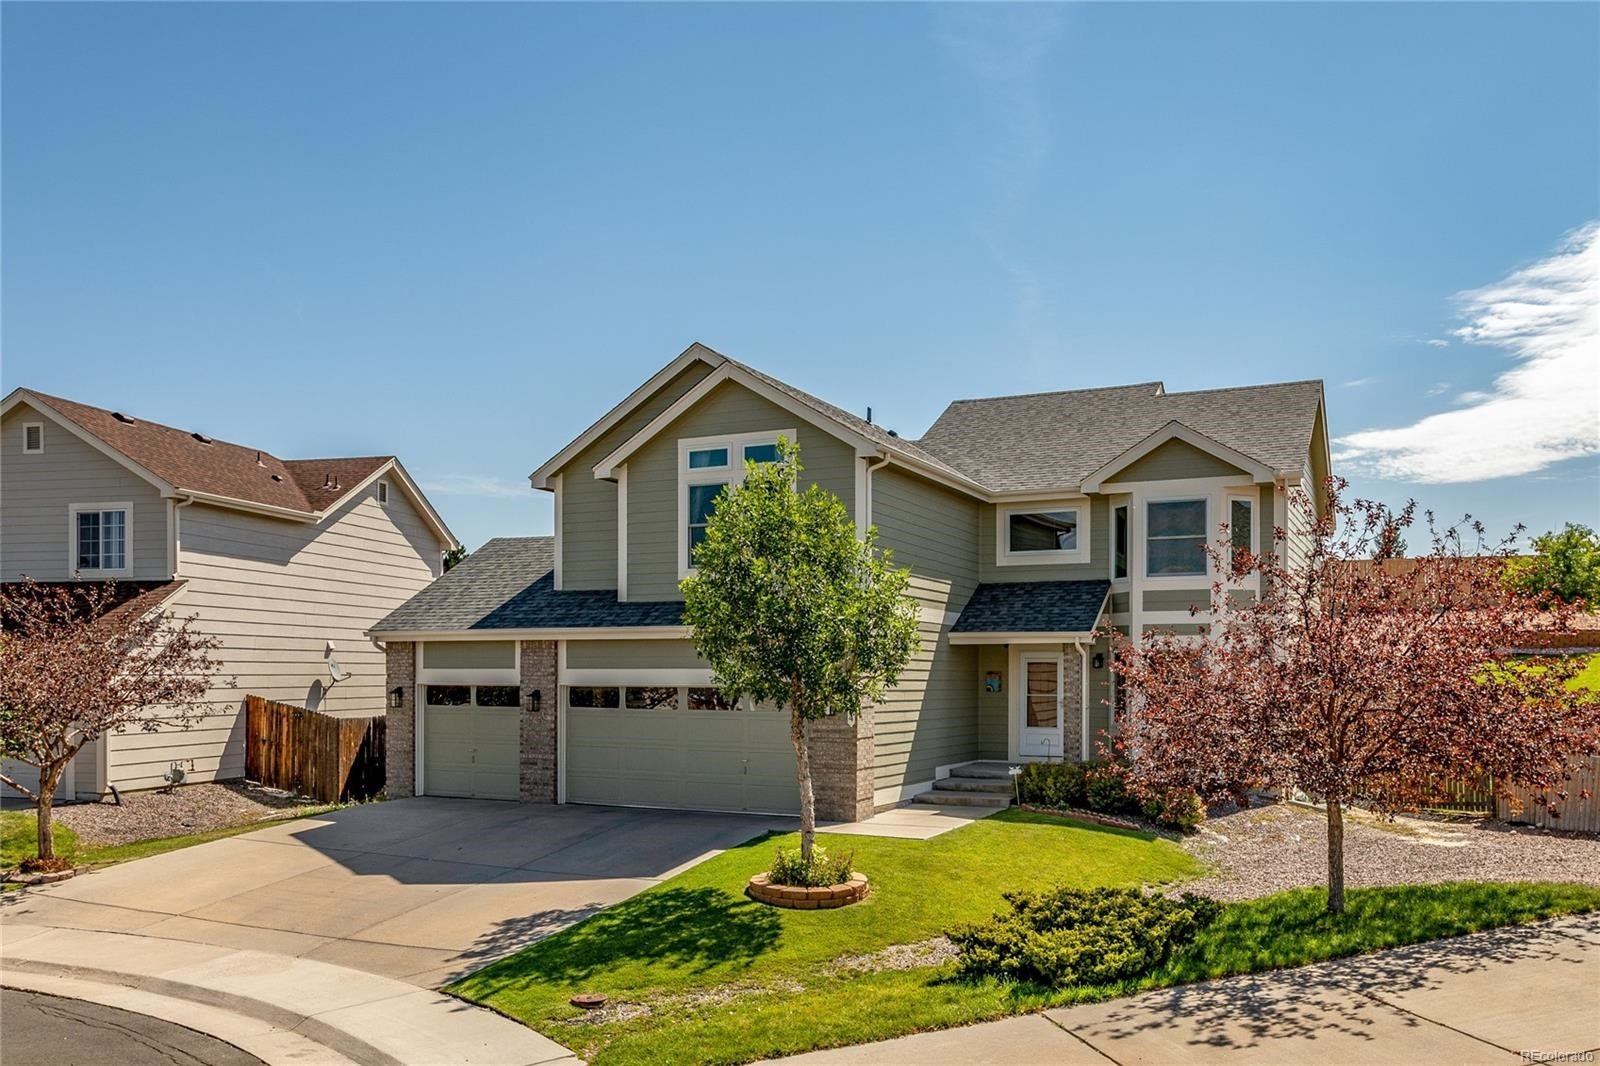 MLS# 3396693 - 2 - 6084 S Zante Way, Aurora, CO 80015